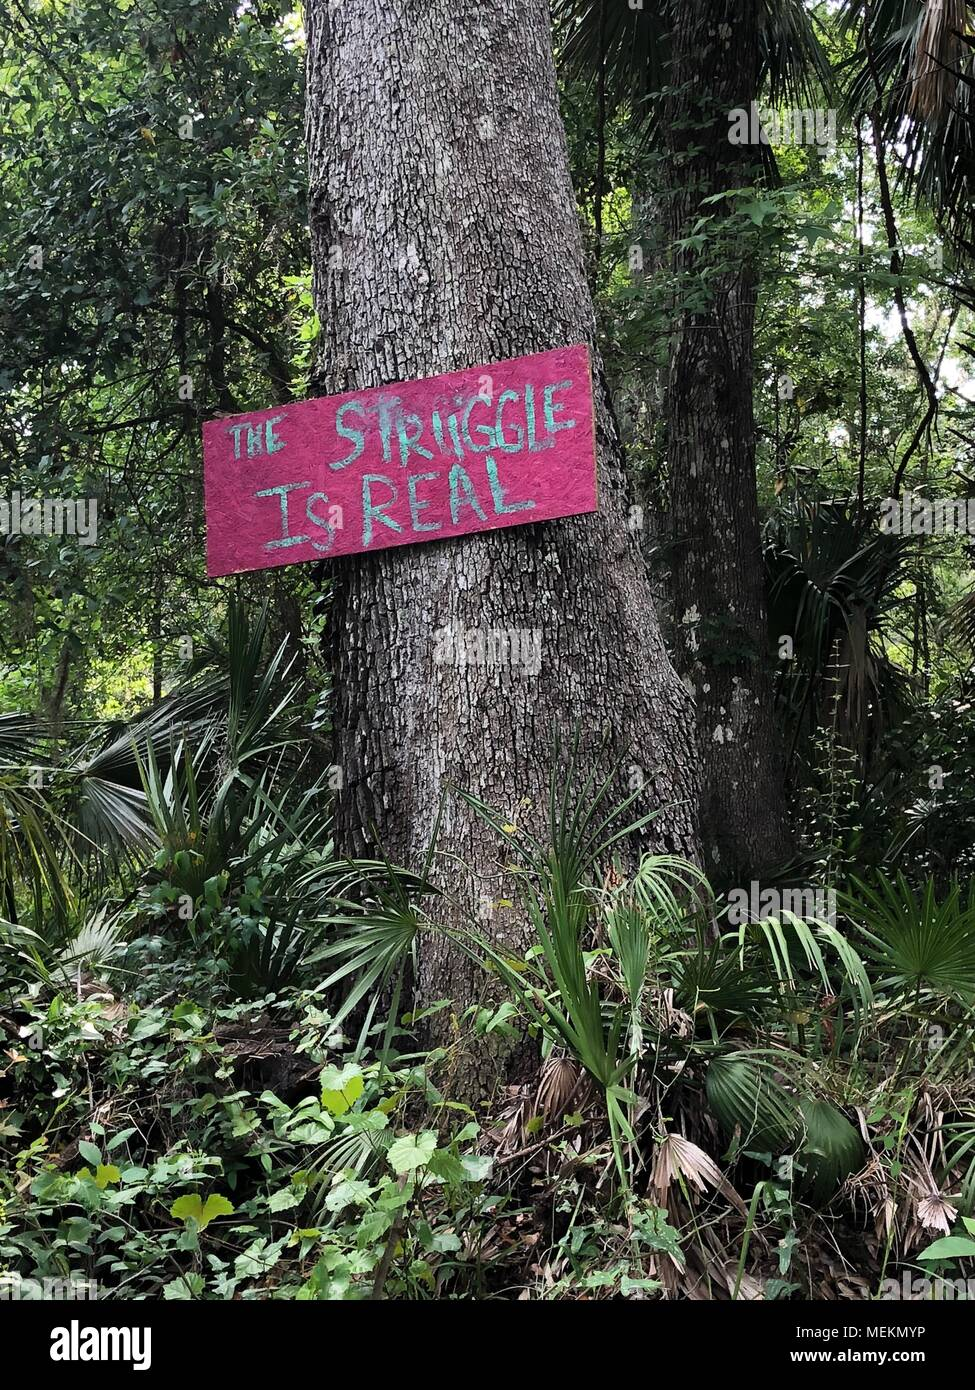 A sign in a poverty stricken, rural area of Florida reads: 'The Struggle Is Real' - Stock Image